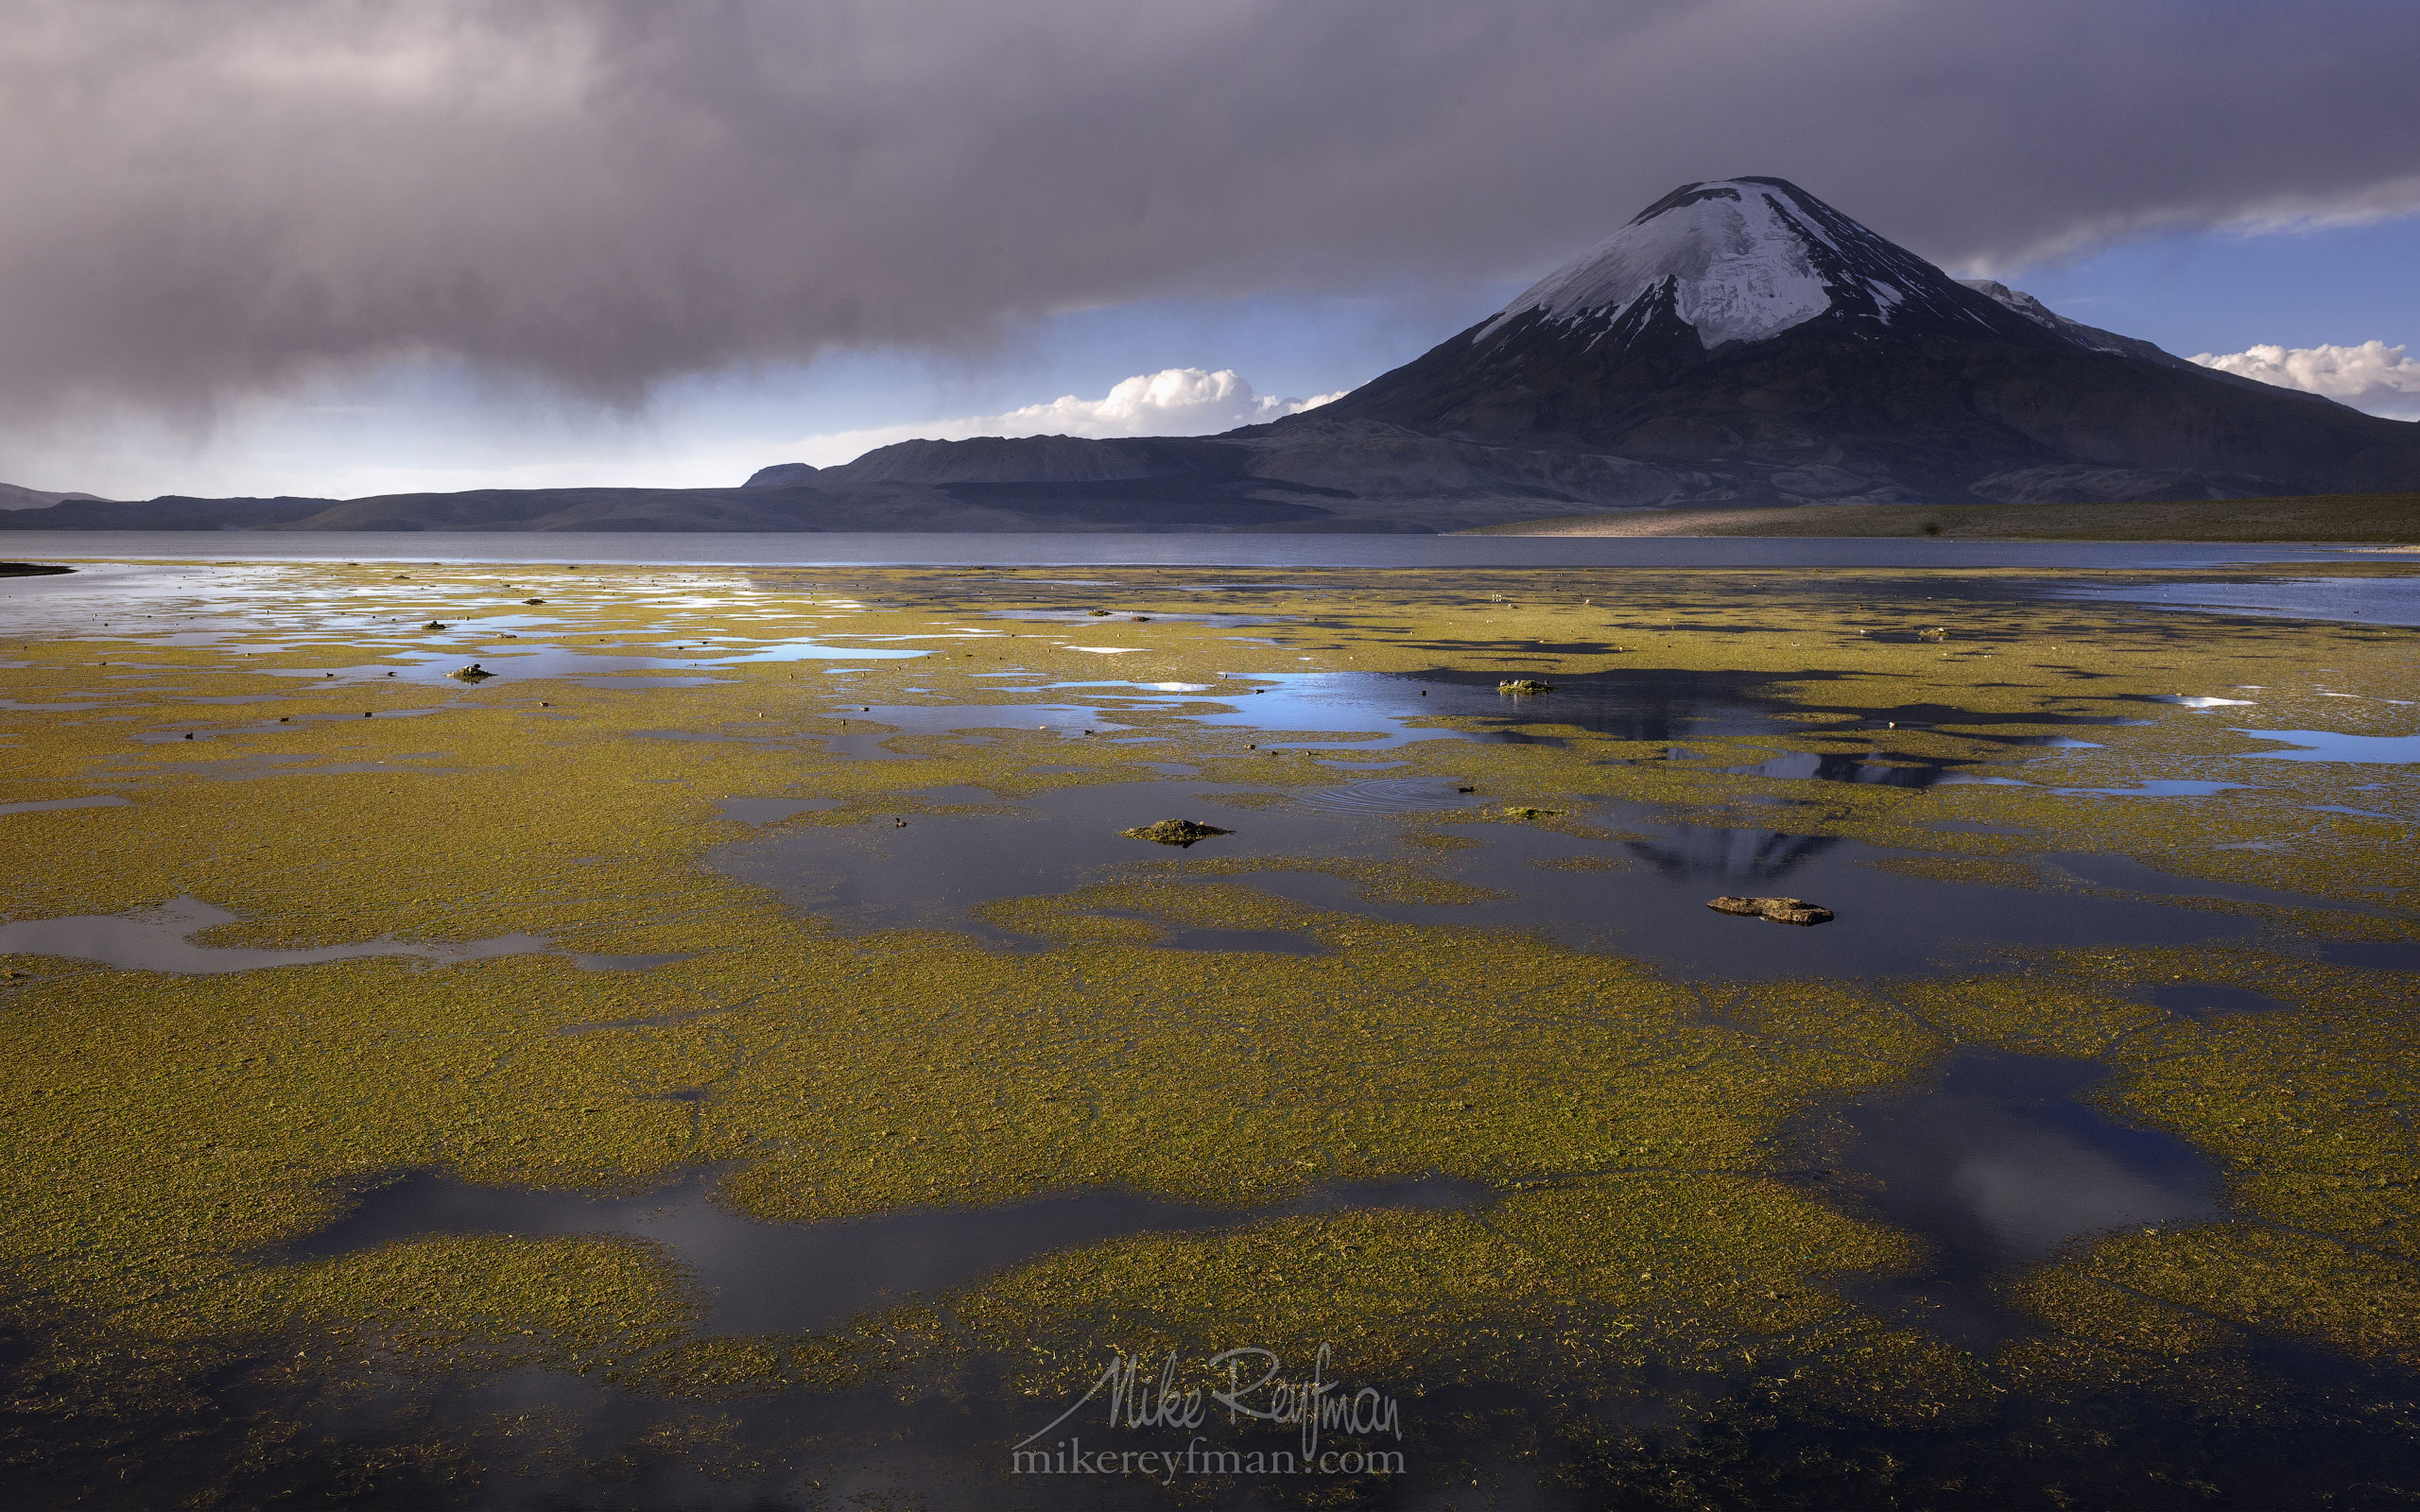 Parinacota Stratovolcano and Chungara Lake. Lauca National Park, Altiplano, Chile AA1-AIR2698 - Atacama and Altiplano. The Driest Desert and The High Plain - Mike Reyfman Photography